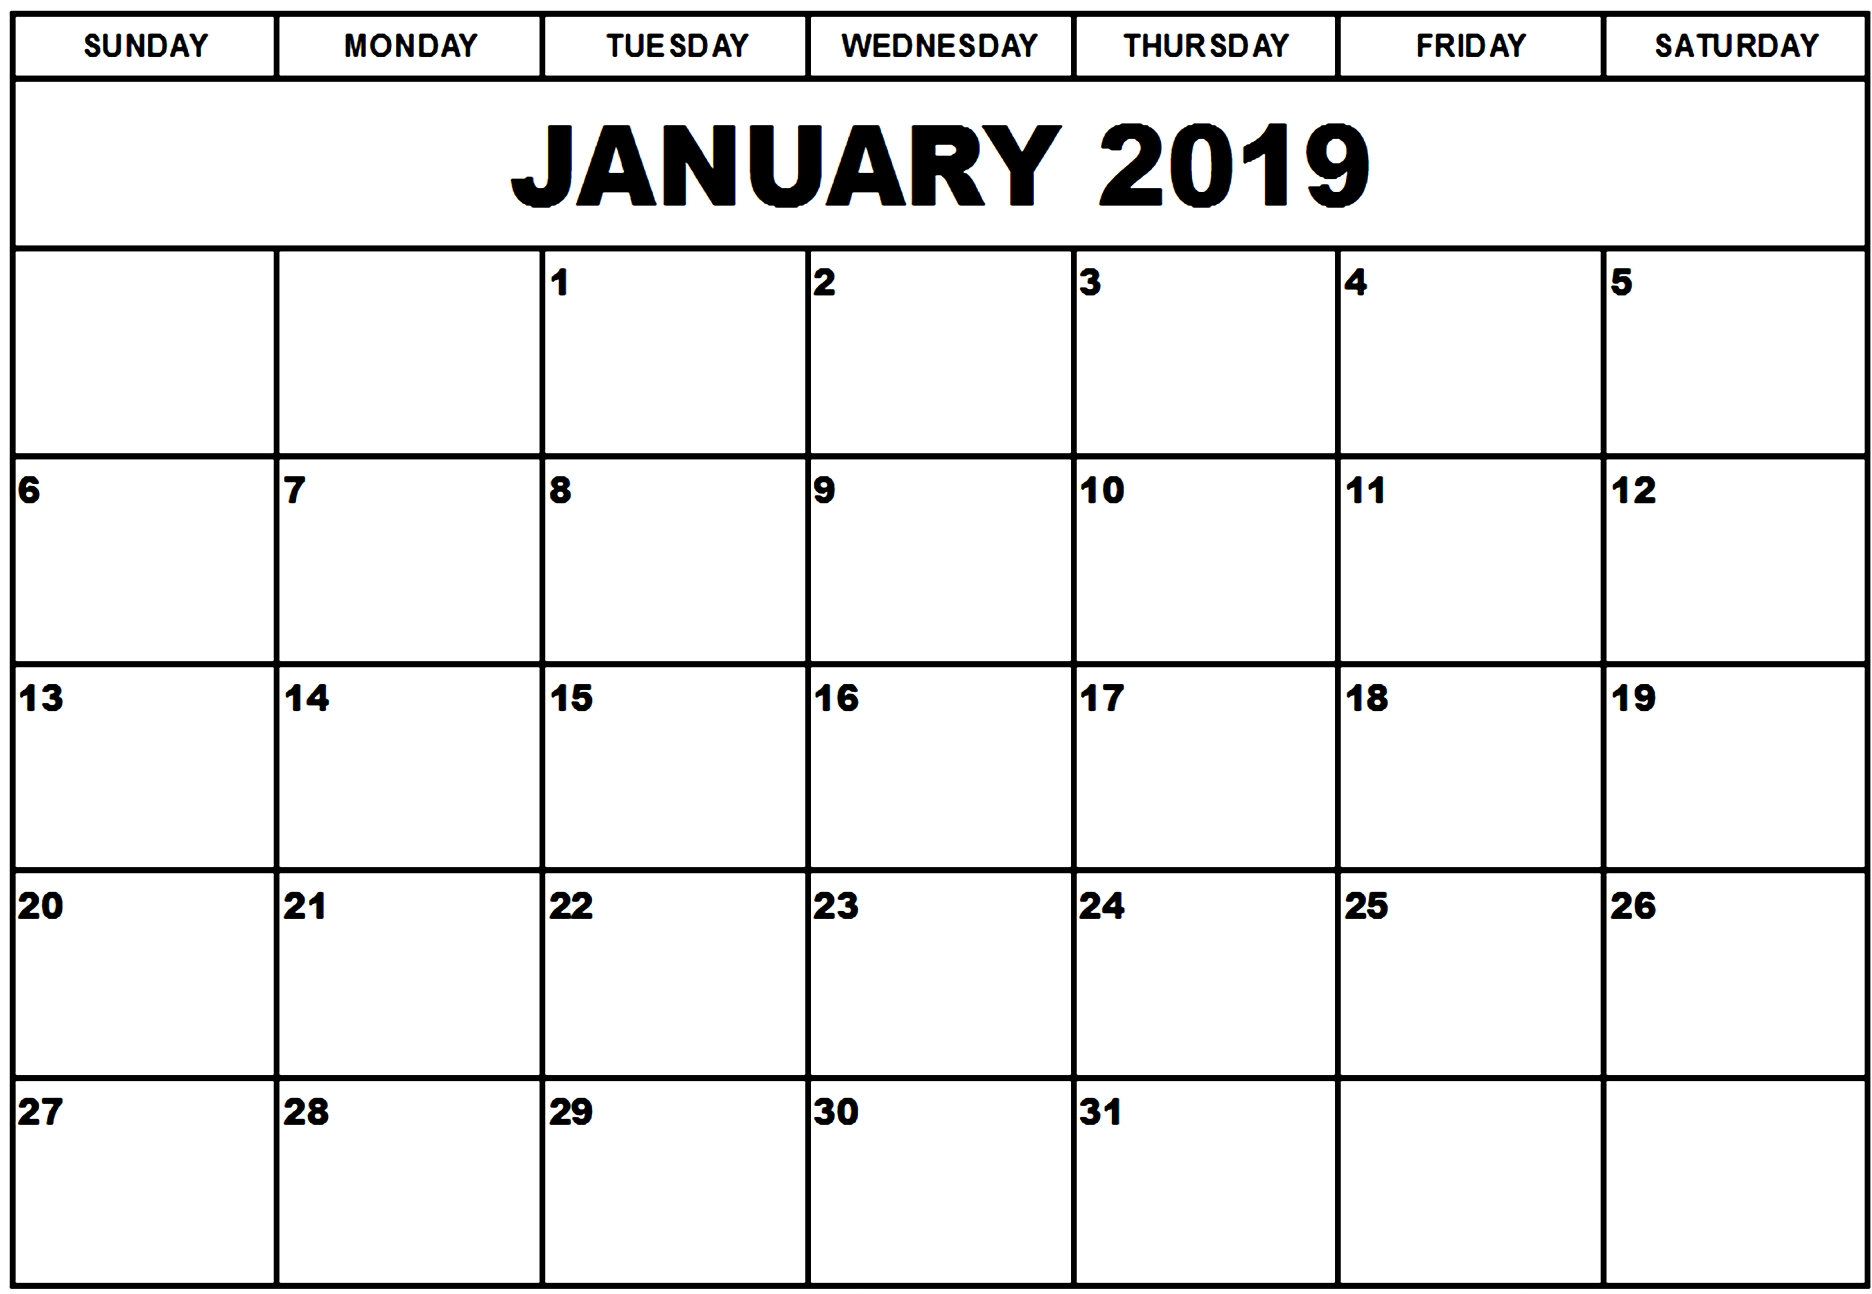 January 2019 Calendar Template Manage Work Monthly